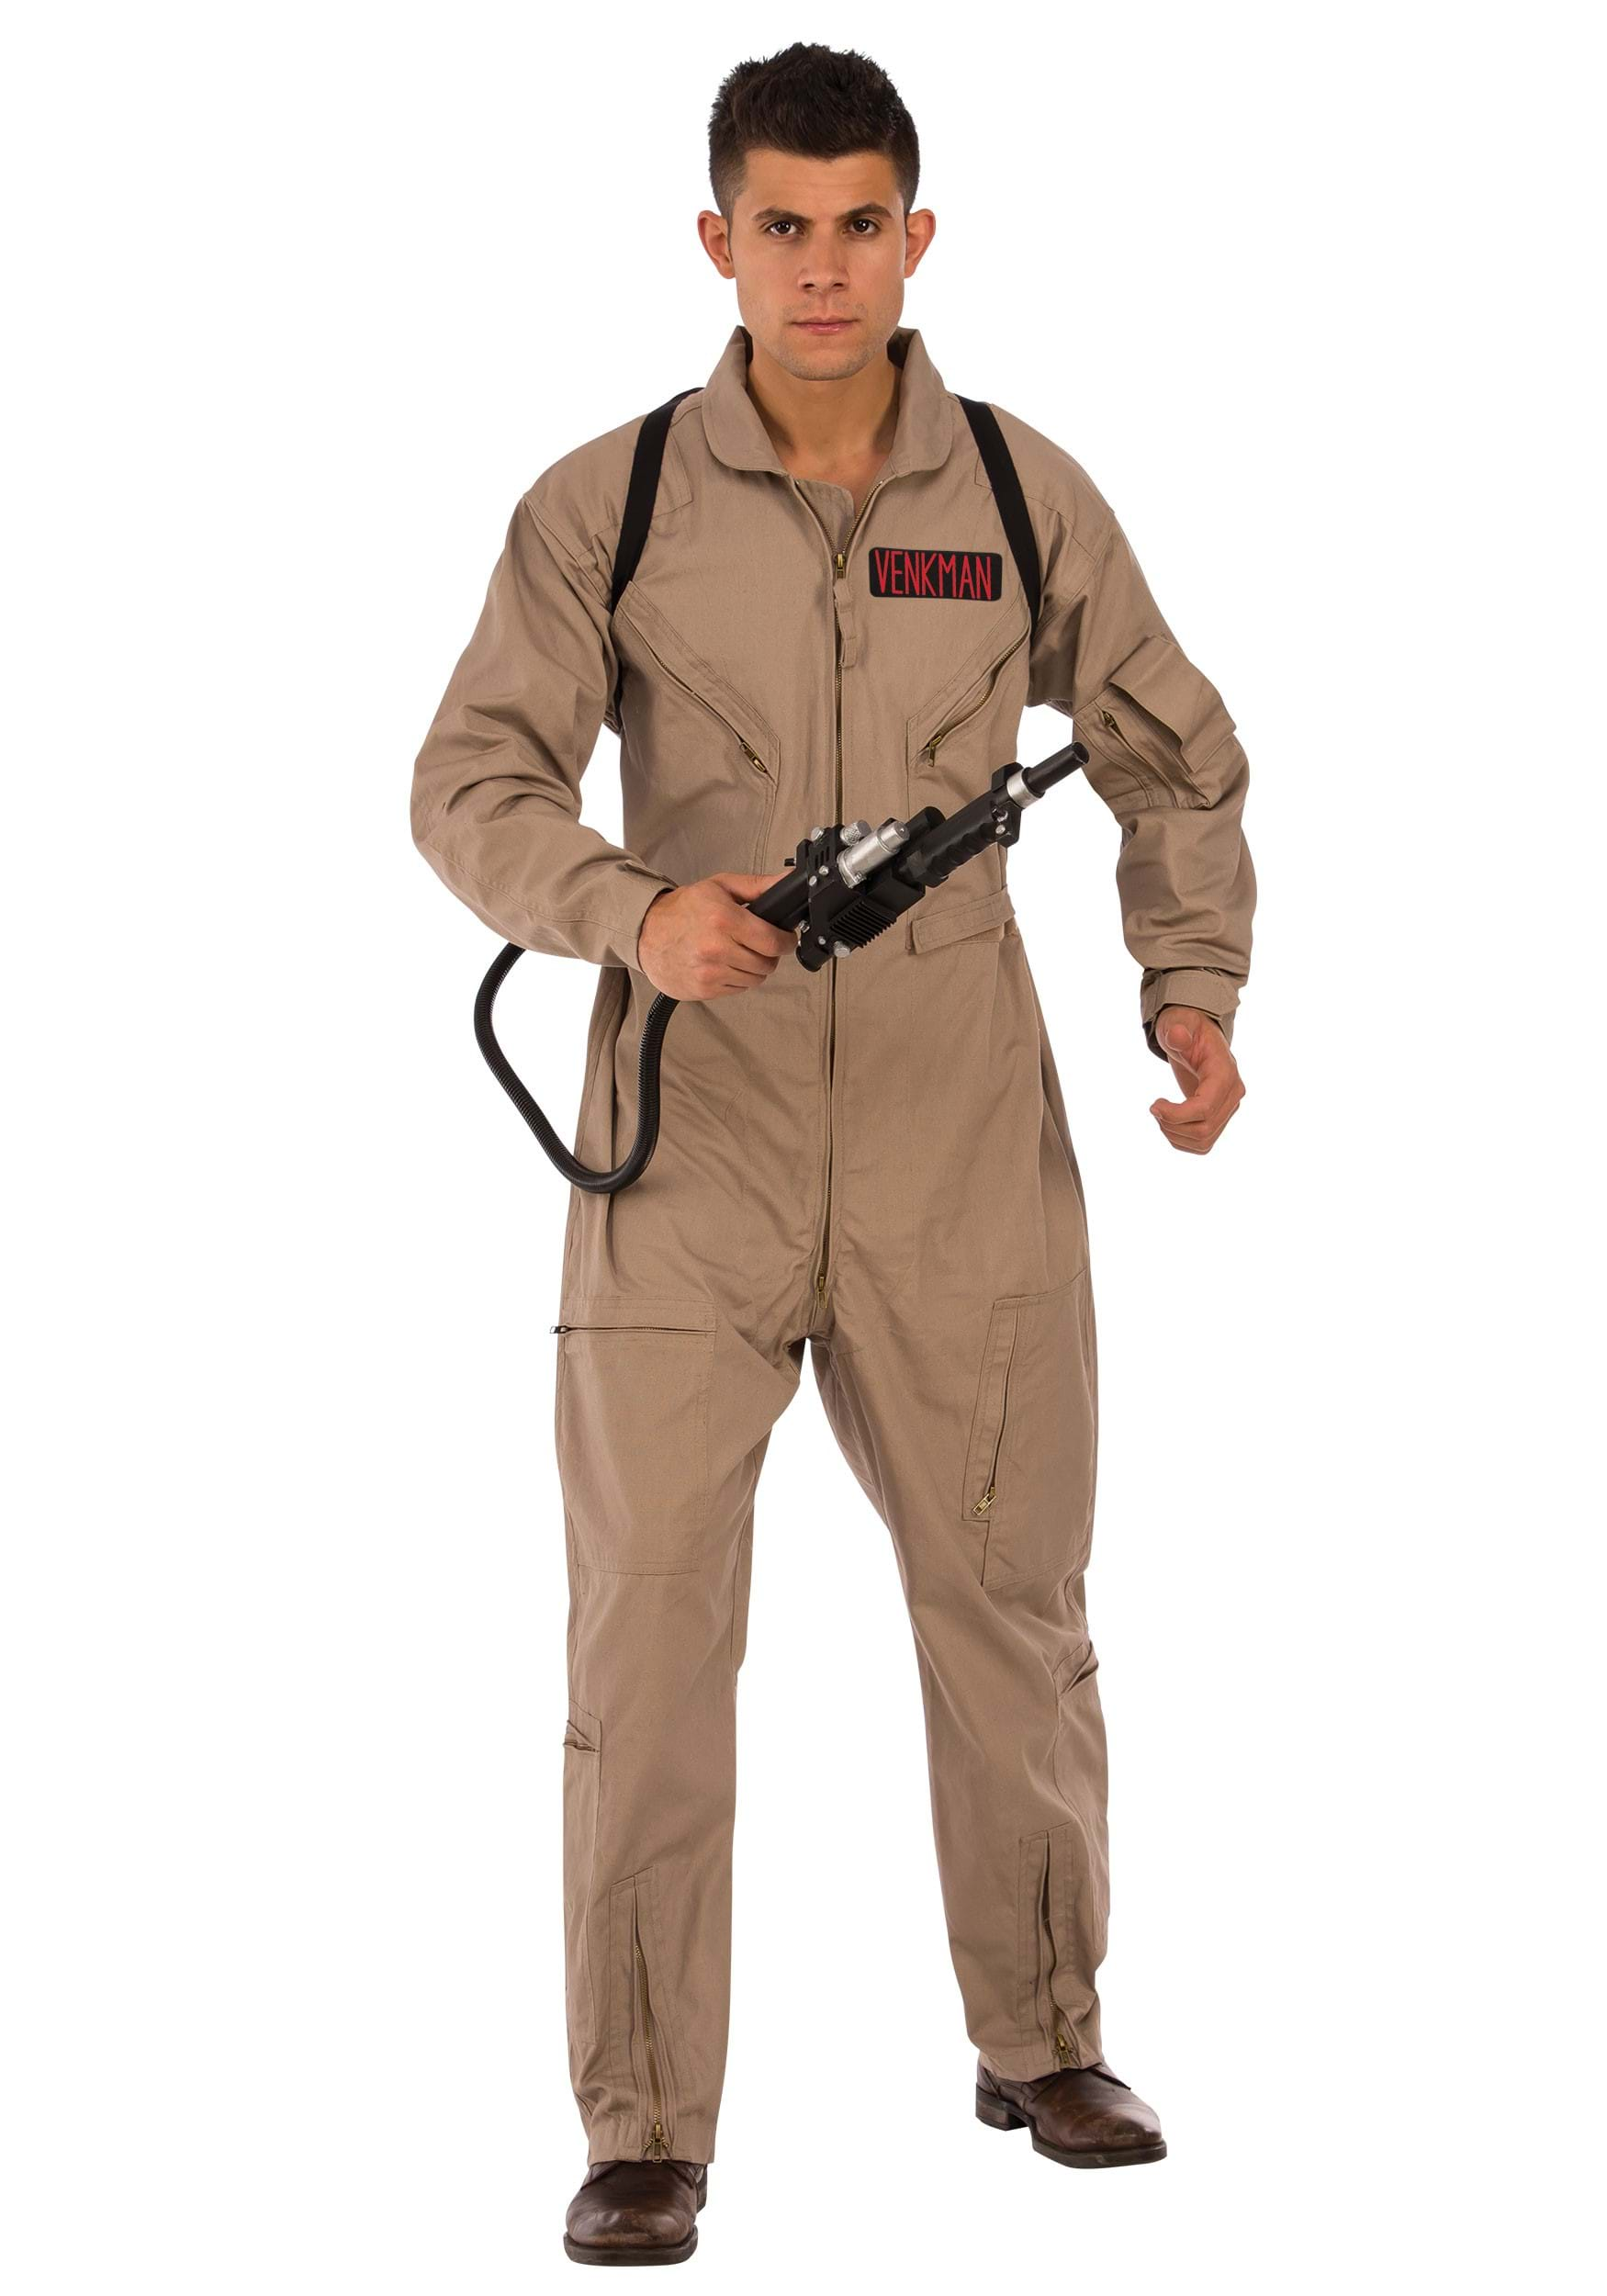 Ghostbusters Grand Heritage Adult Costume  sc 1 st  Halloween Costumes & Ghostbusters Grand Heritage Costume for Adults